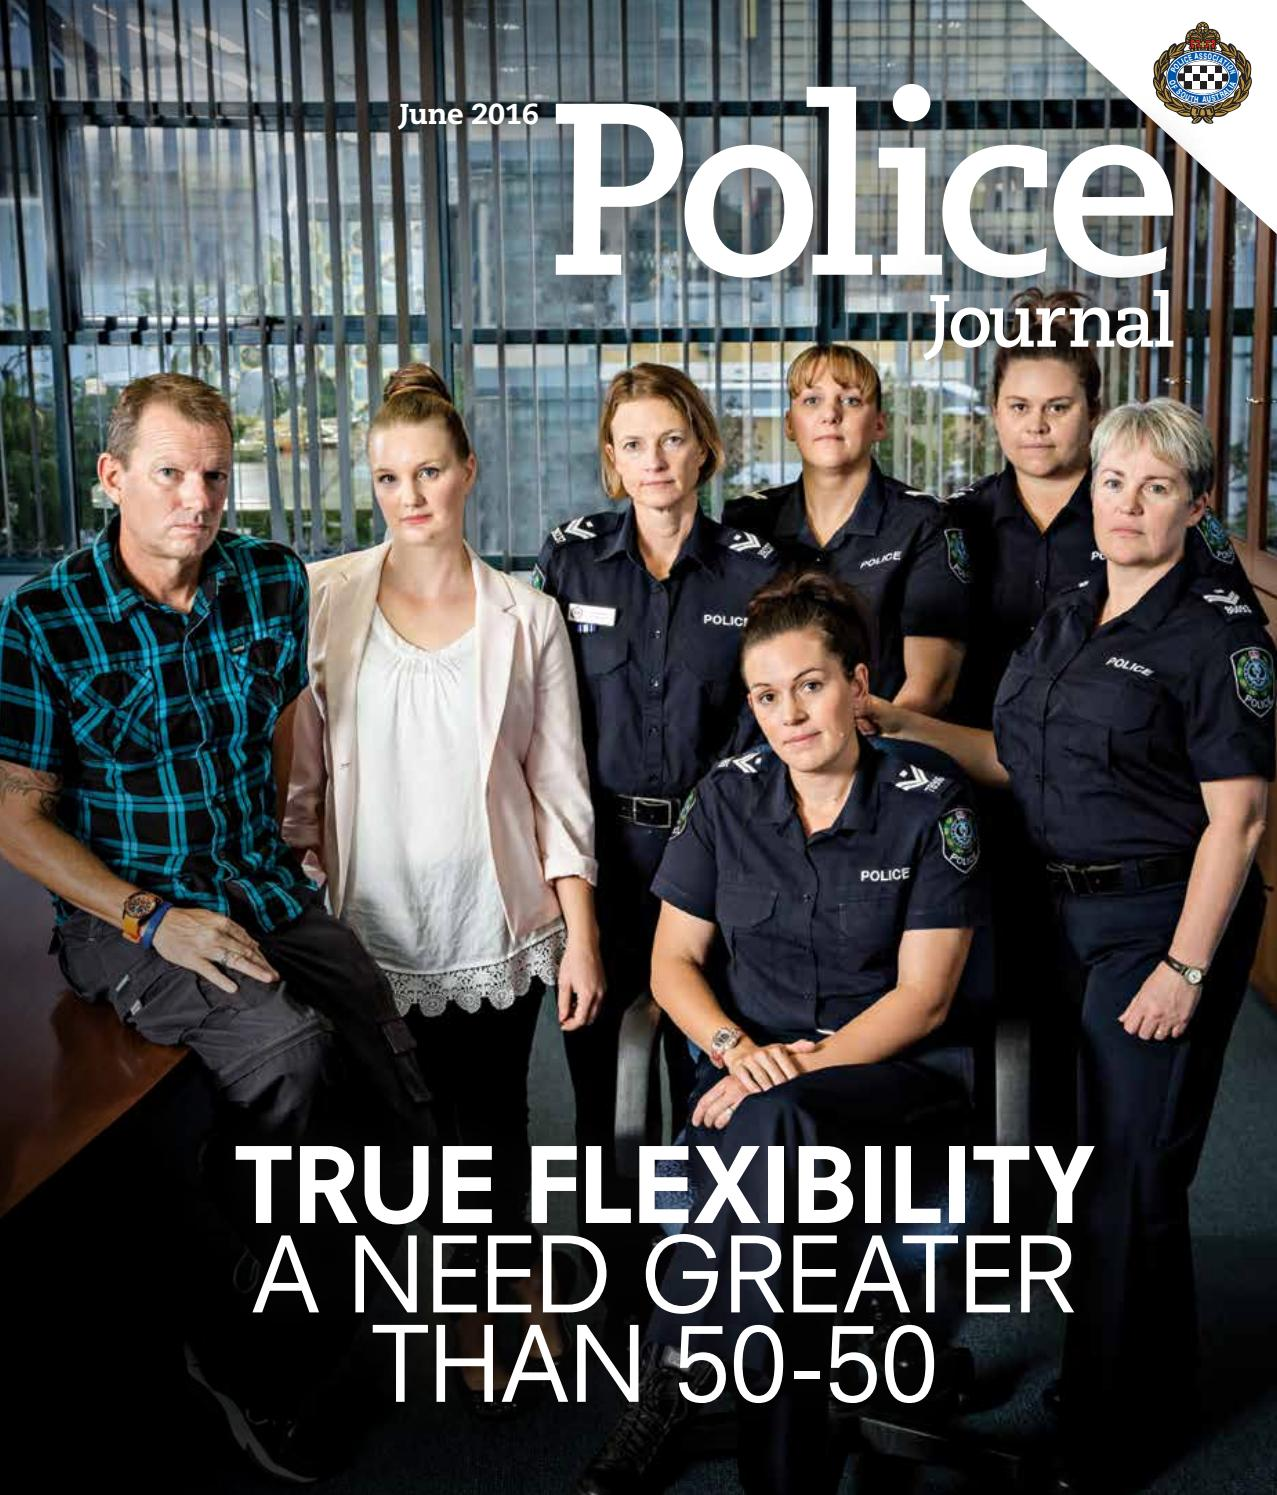 Police journal june 2016 by police journal issuu malvernweather Gallery